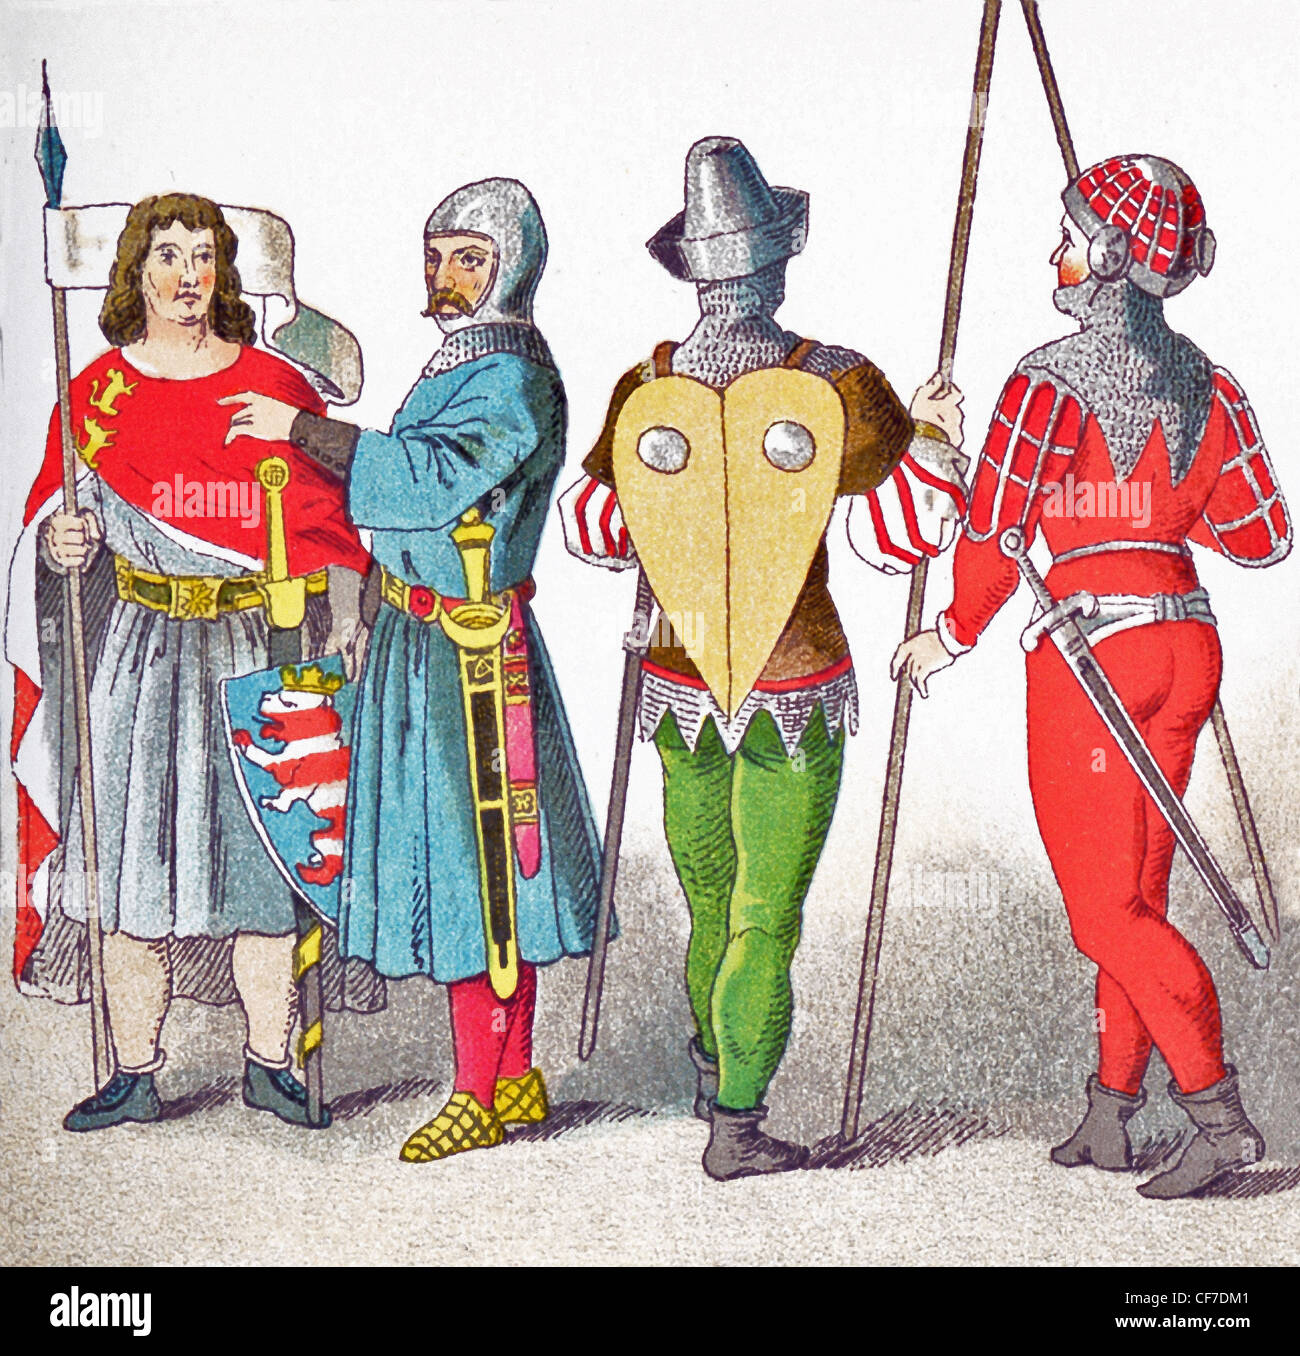 The figures represent Germans from1350 to 1400 (from left to right): Count of Thuringen, knight in battle costume, - Stock Image